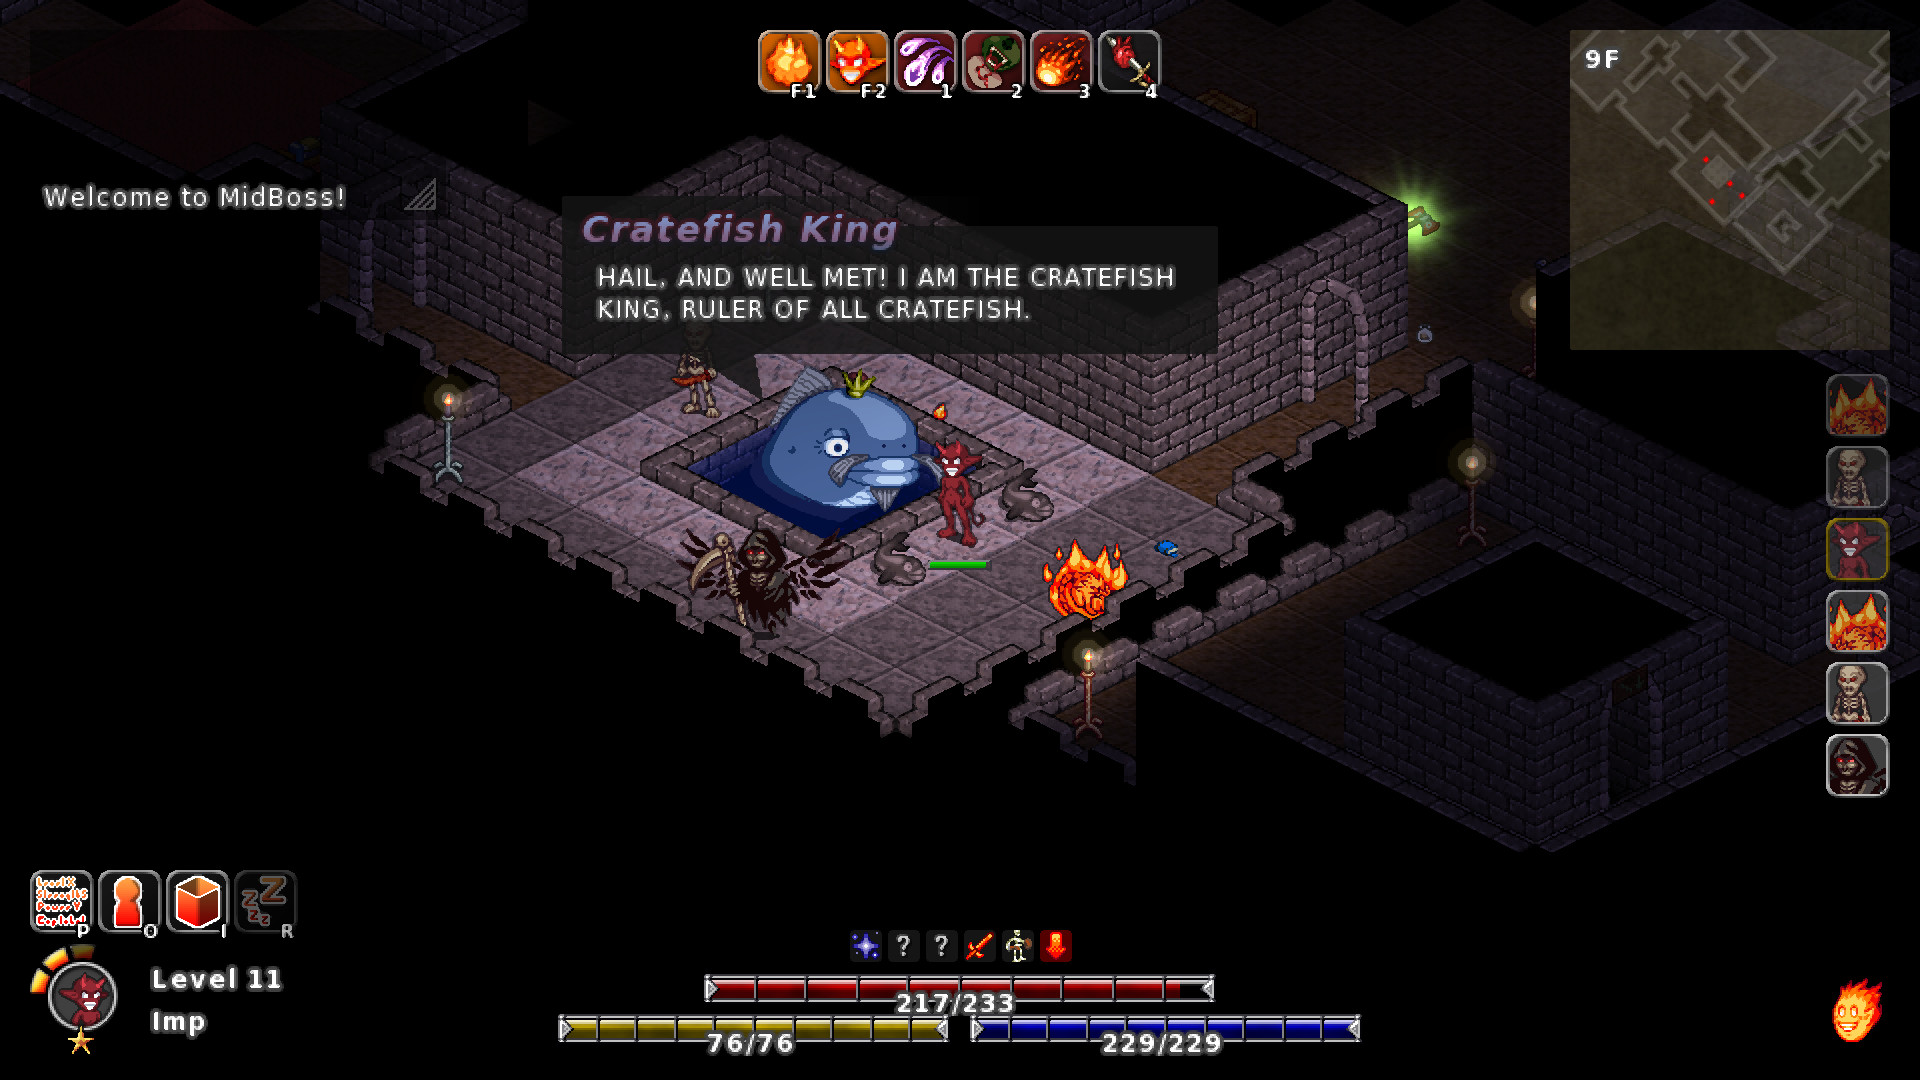 MidBoss screenshot